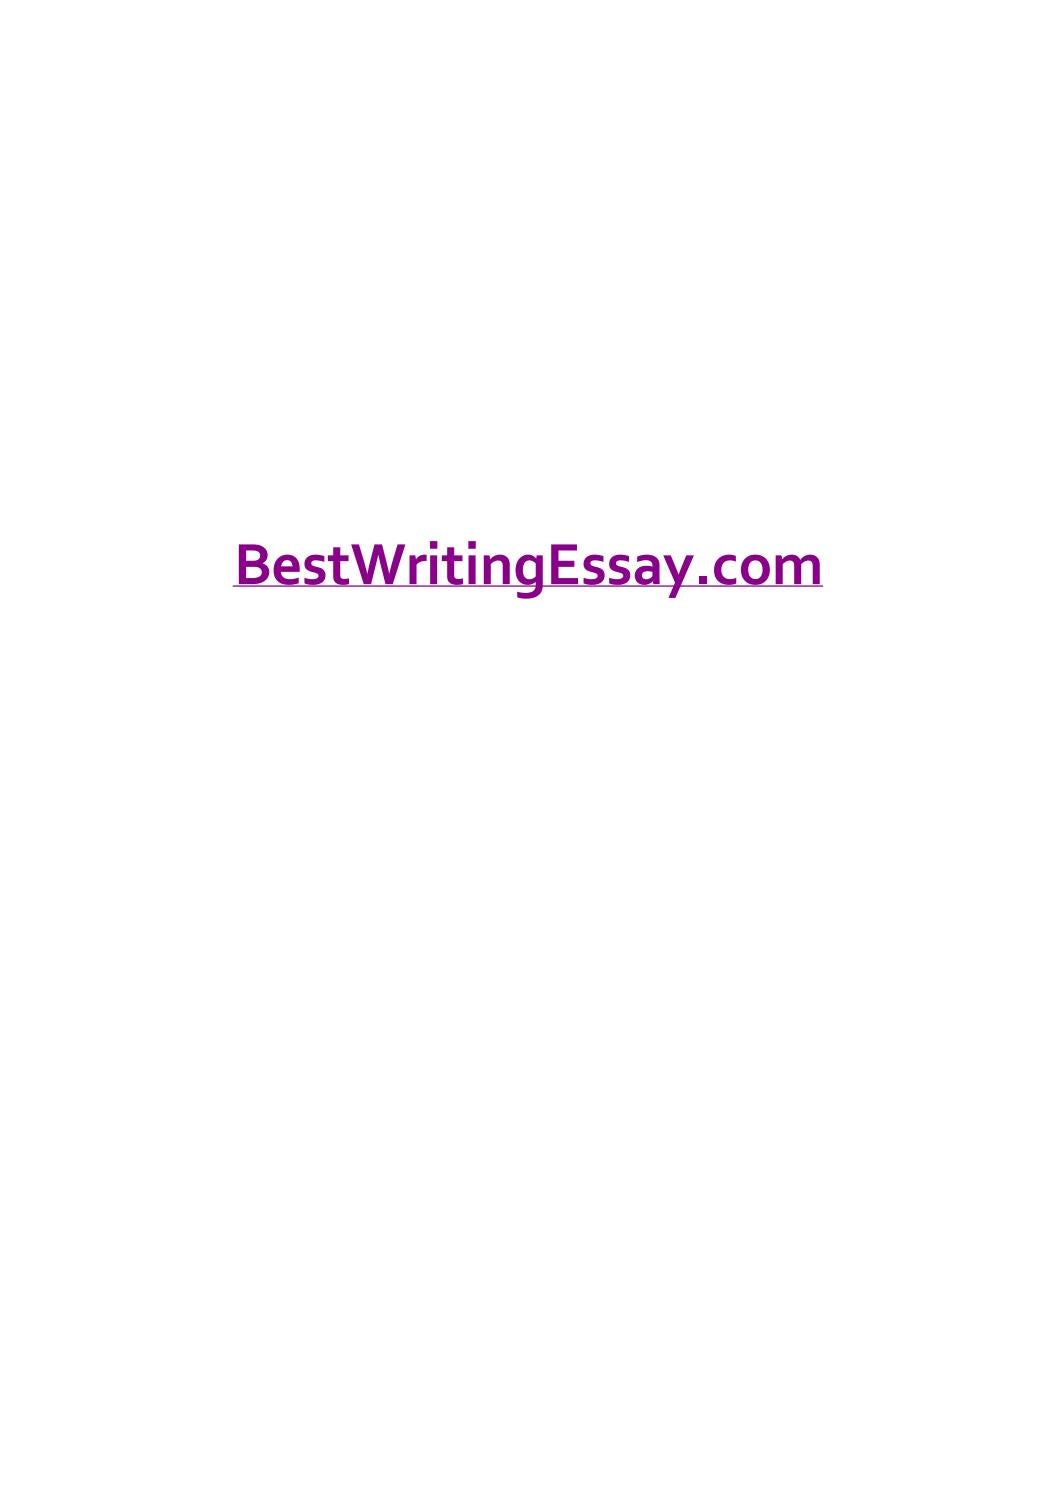 Research Essay Proposal Sample  High School Personal Statement Sample Essays also Computer Science Essay Topics Essay About Myself For College Application By Cindyqvhze  Issuu Thesis Examples In Essays